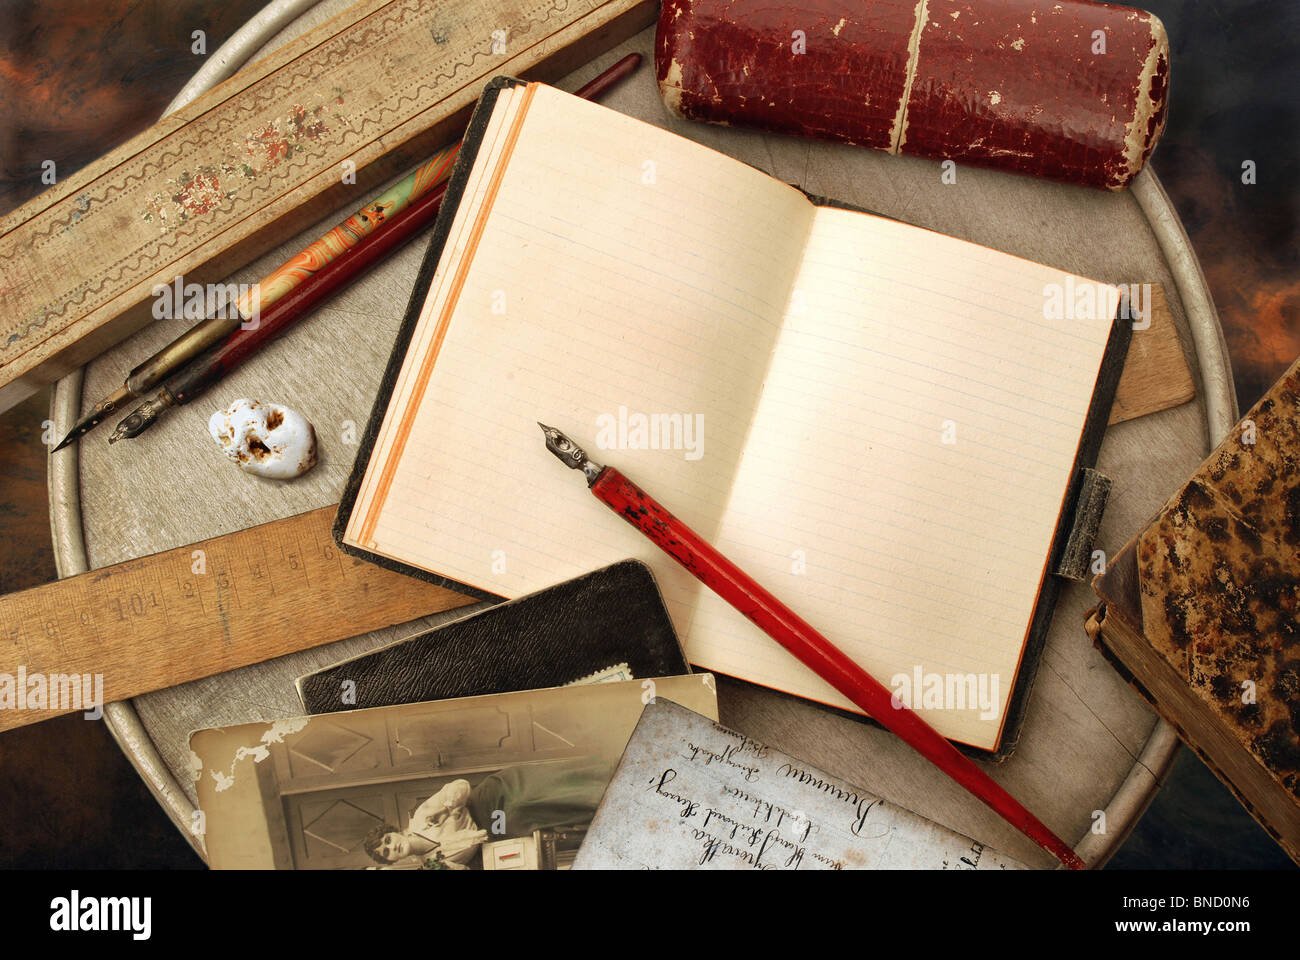 Vintage writing - Stock Image